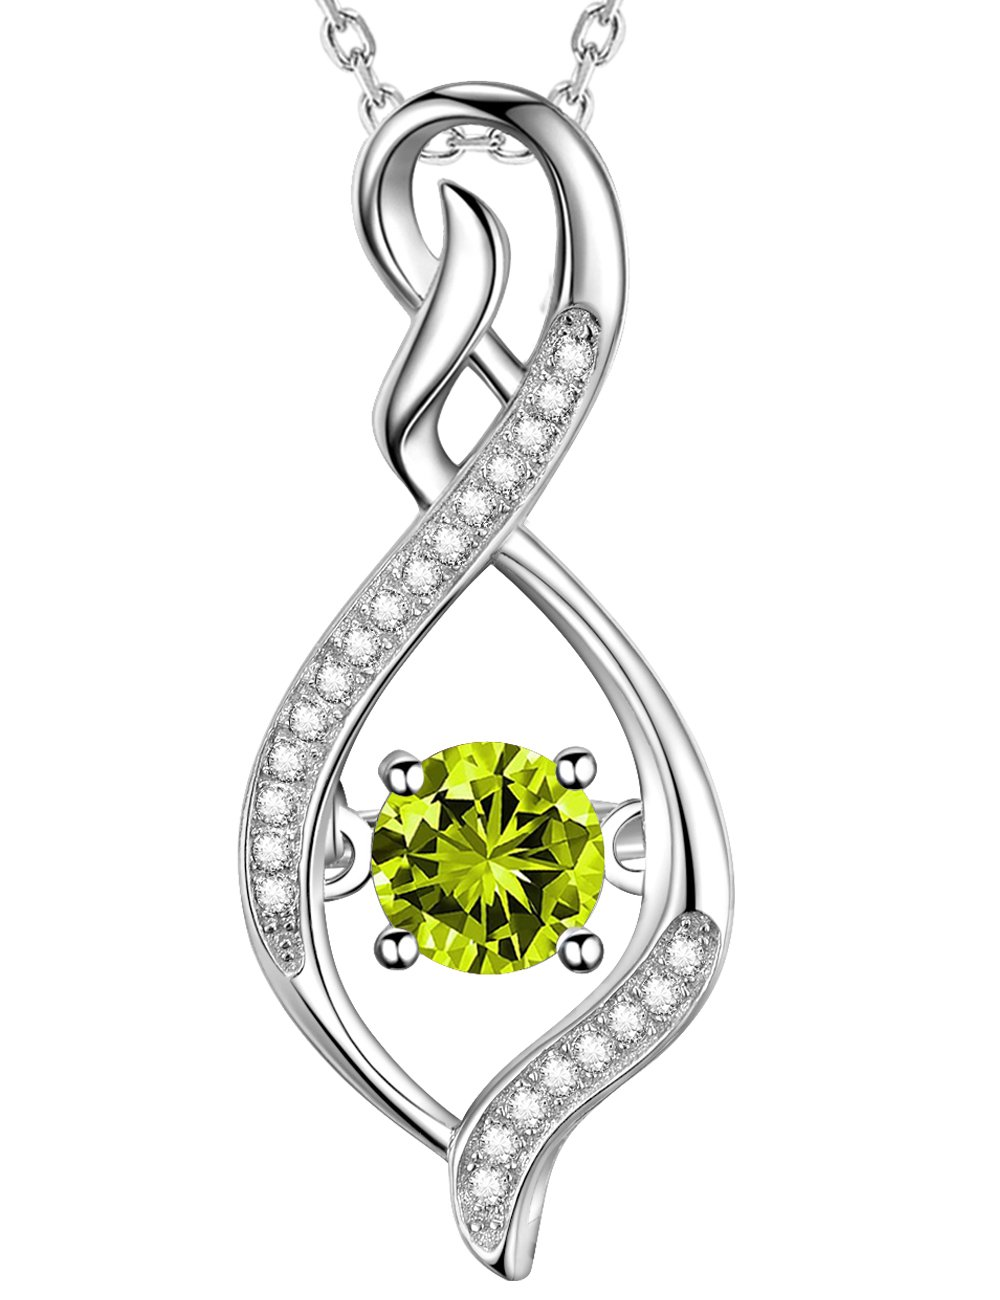 Green Peridot Necklace Infinity Love Pendant Jewelry Sterling Silver Swarovski Birthday Anniversary Gift for Her for wife for women by Elda&Co